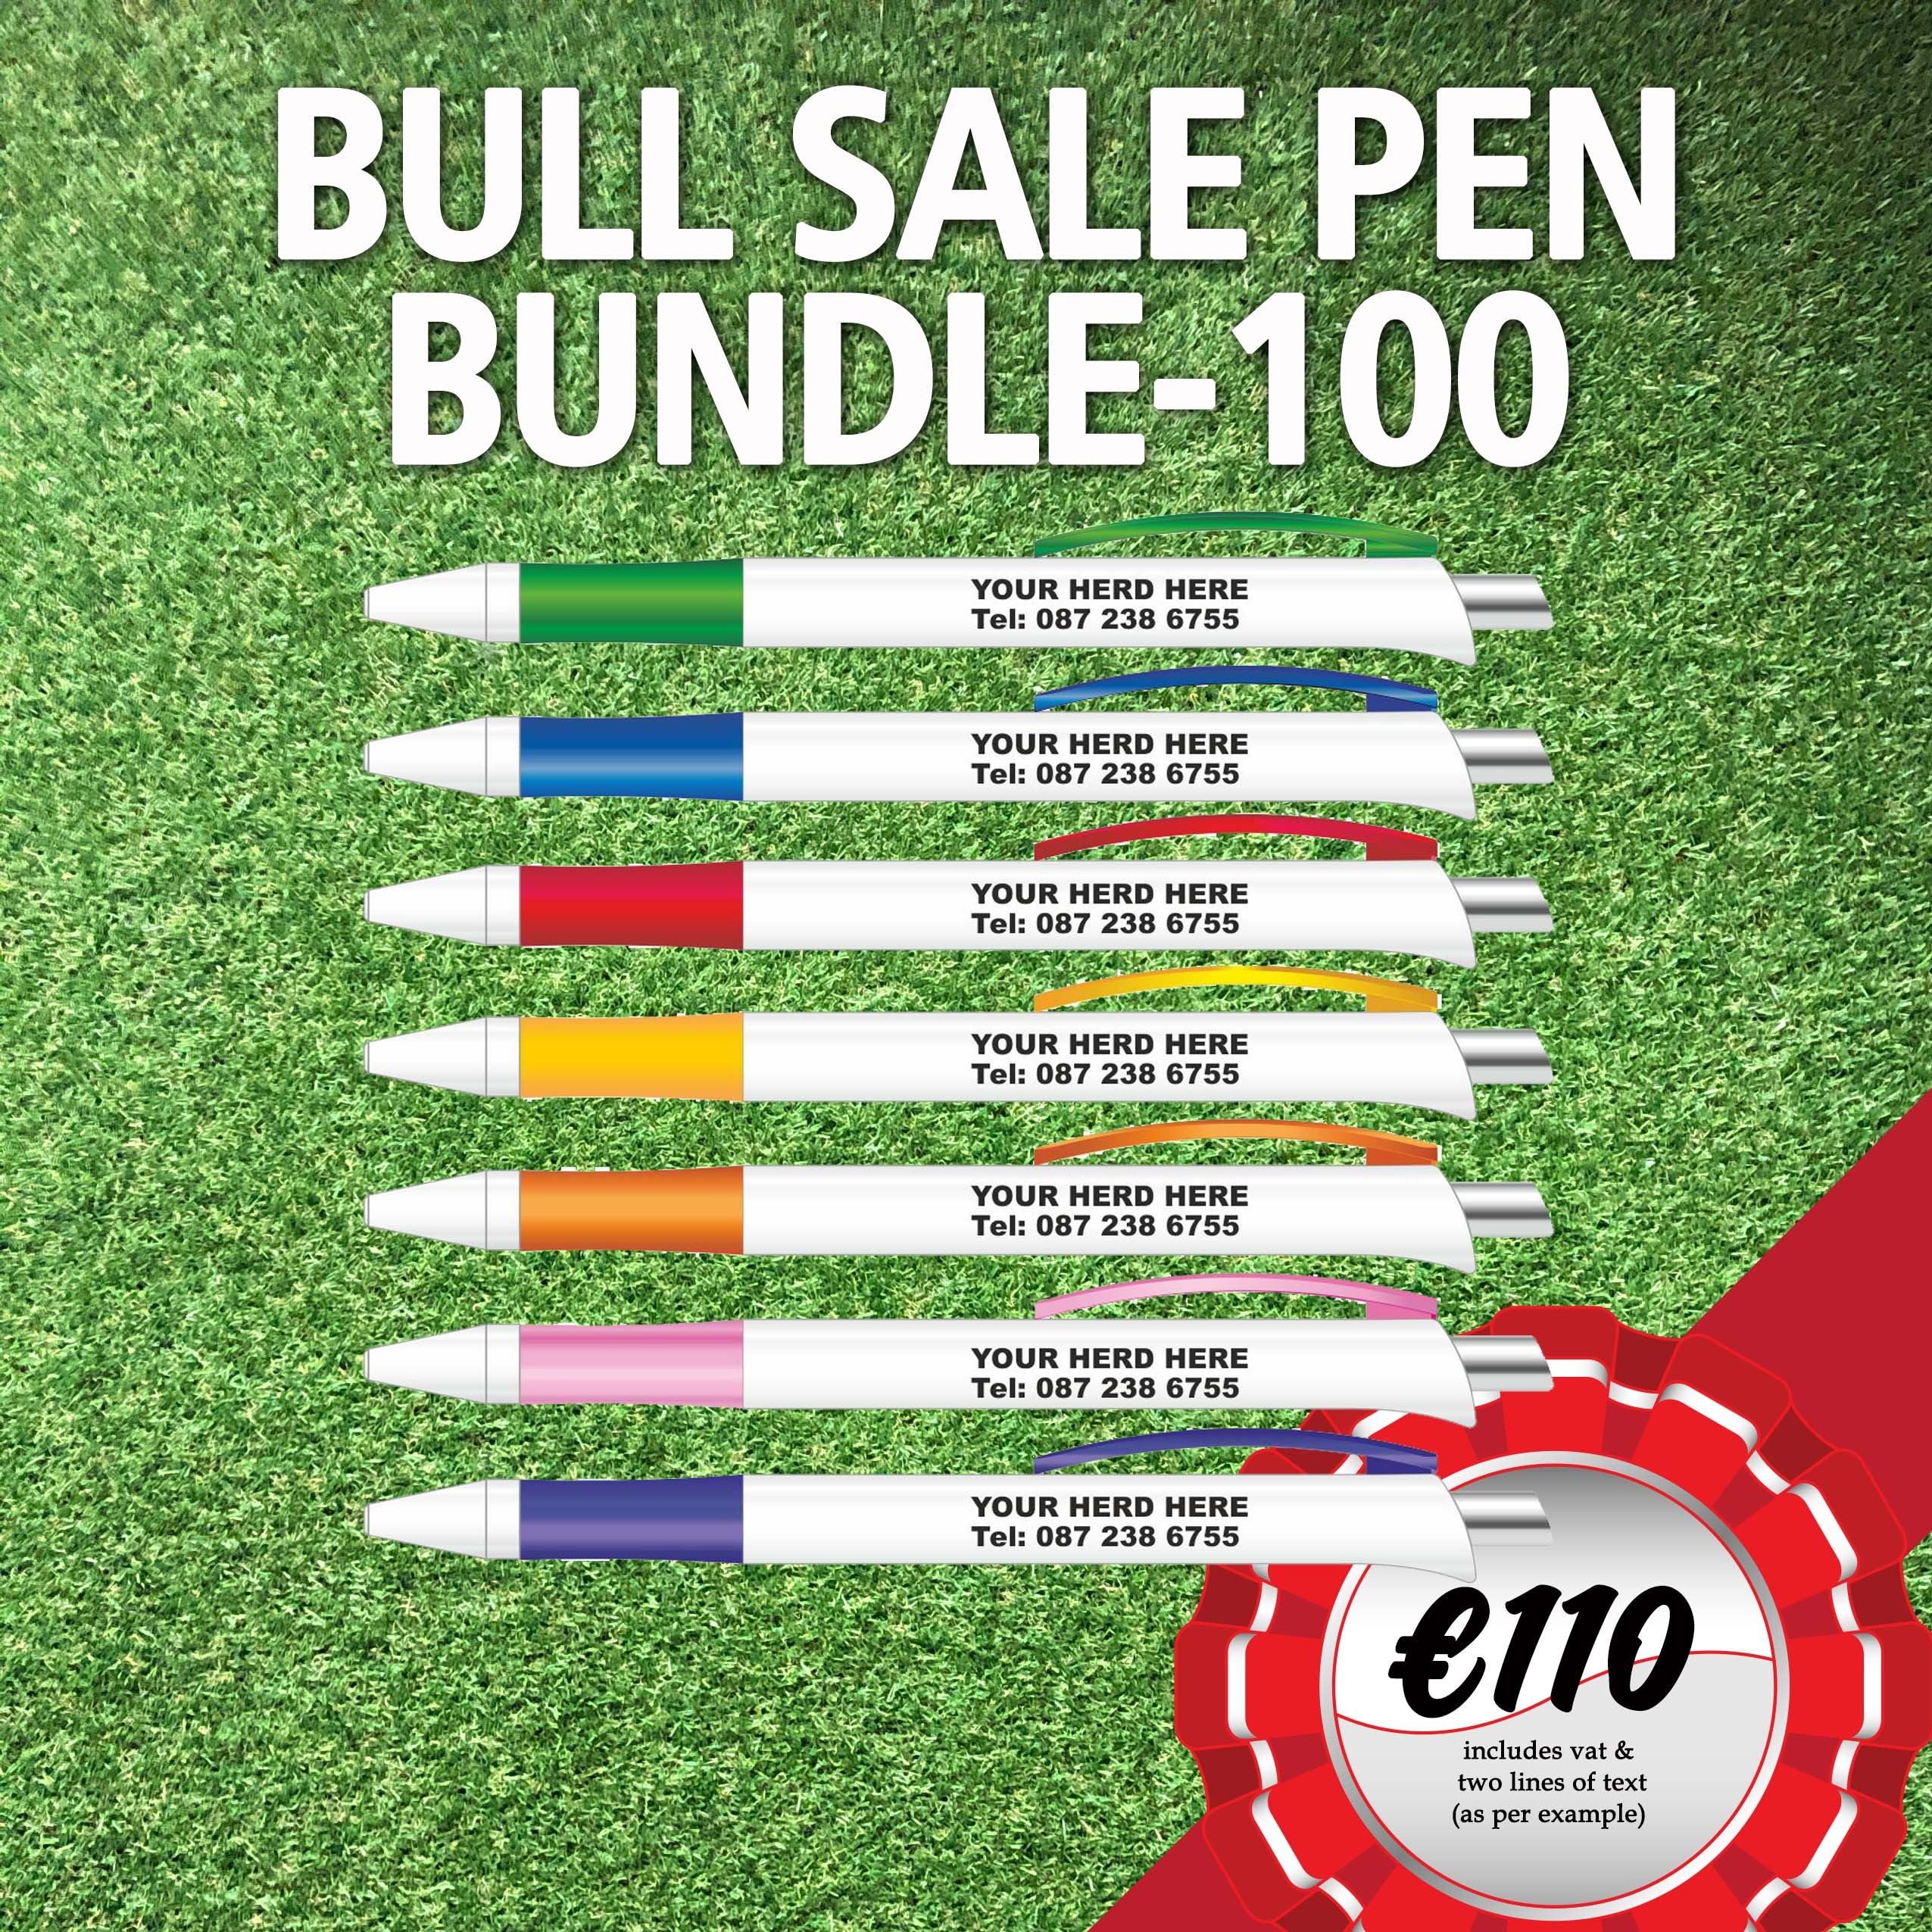 Bull Sale Bundle – 100 Pens with your Herd Name & Contact Number